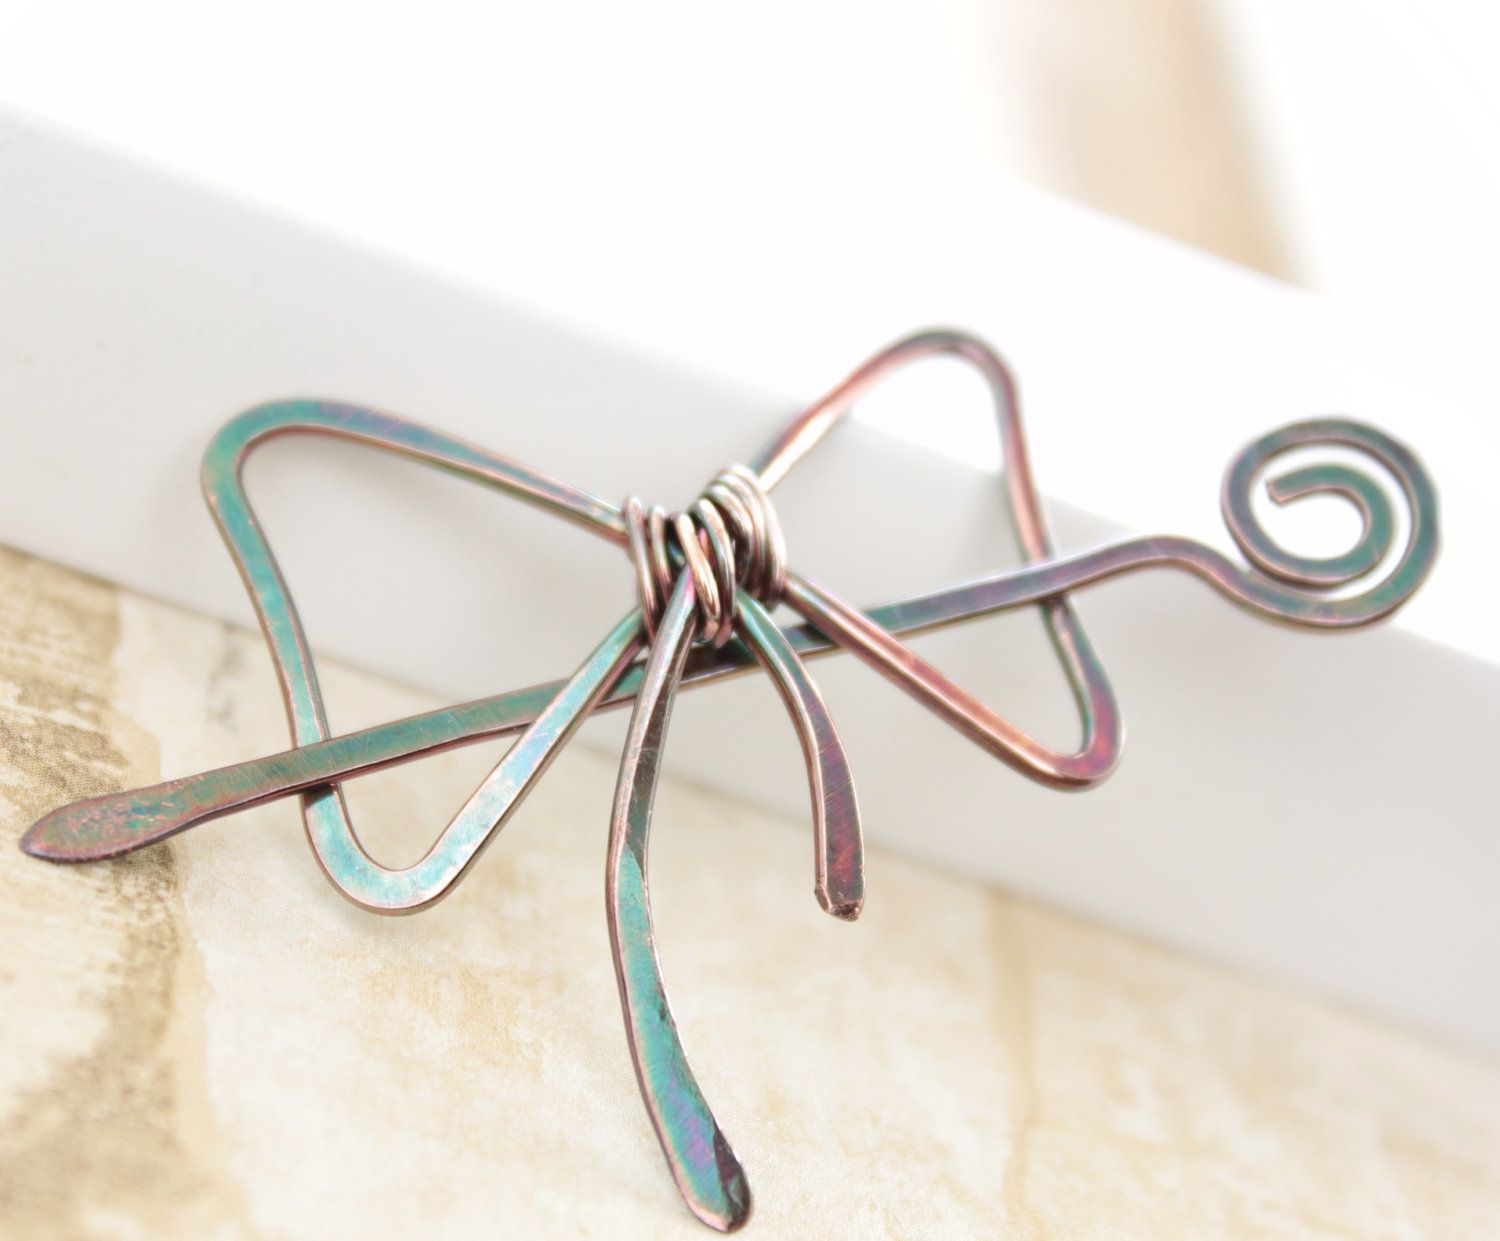 Shawl pin, scarf pin in bow tie shape pin with a pin stick ...